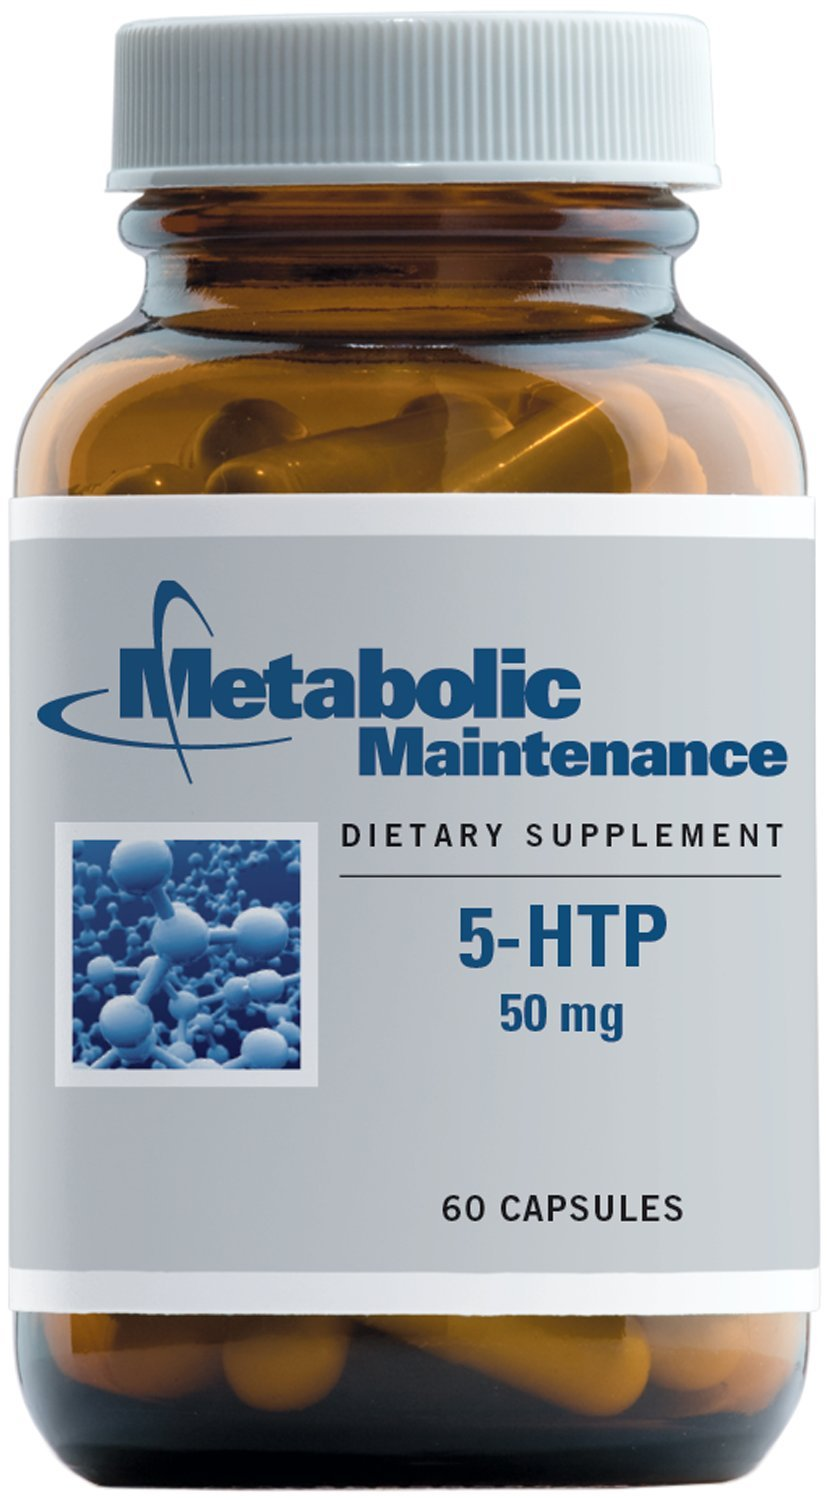 Metabolic Maintenance - 5-HTP - 50 mg with P-5-P (B6) for Mood Support, 60 Capsules